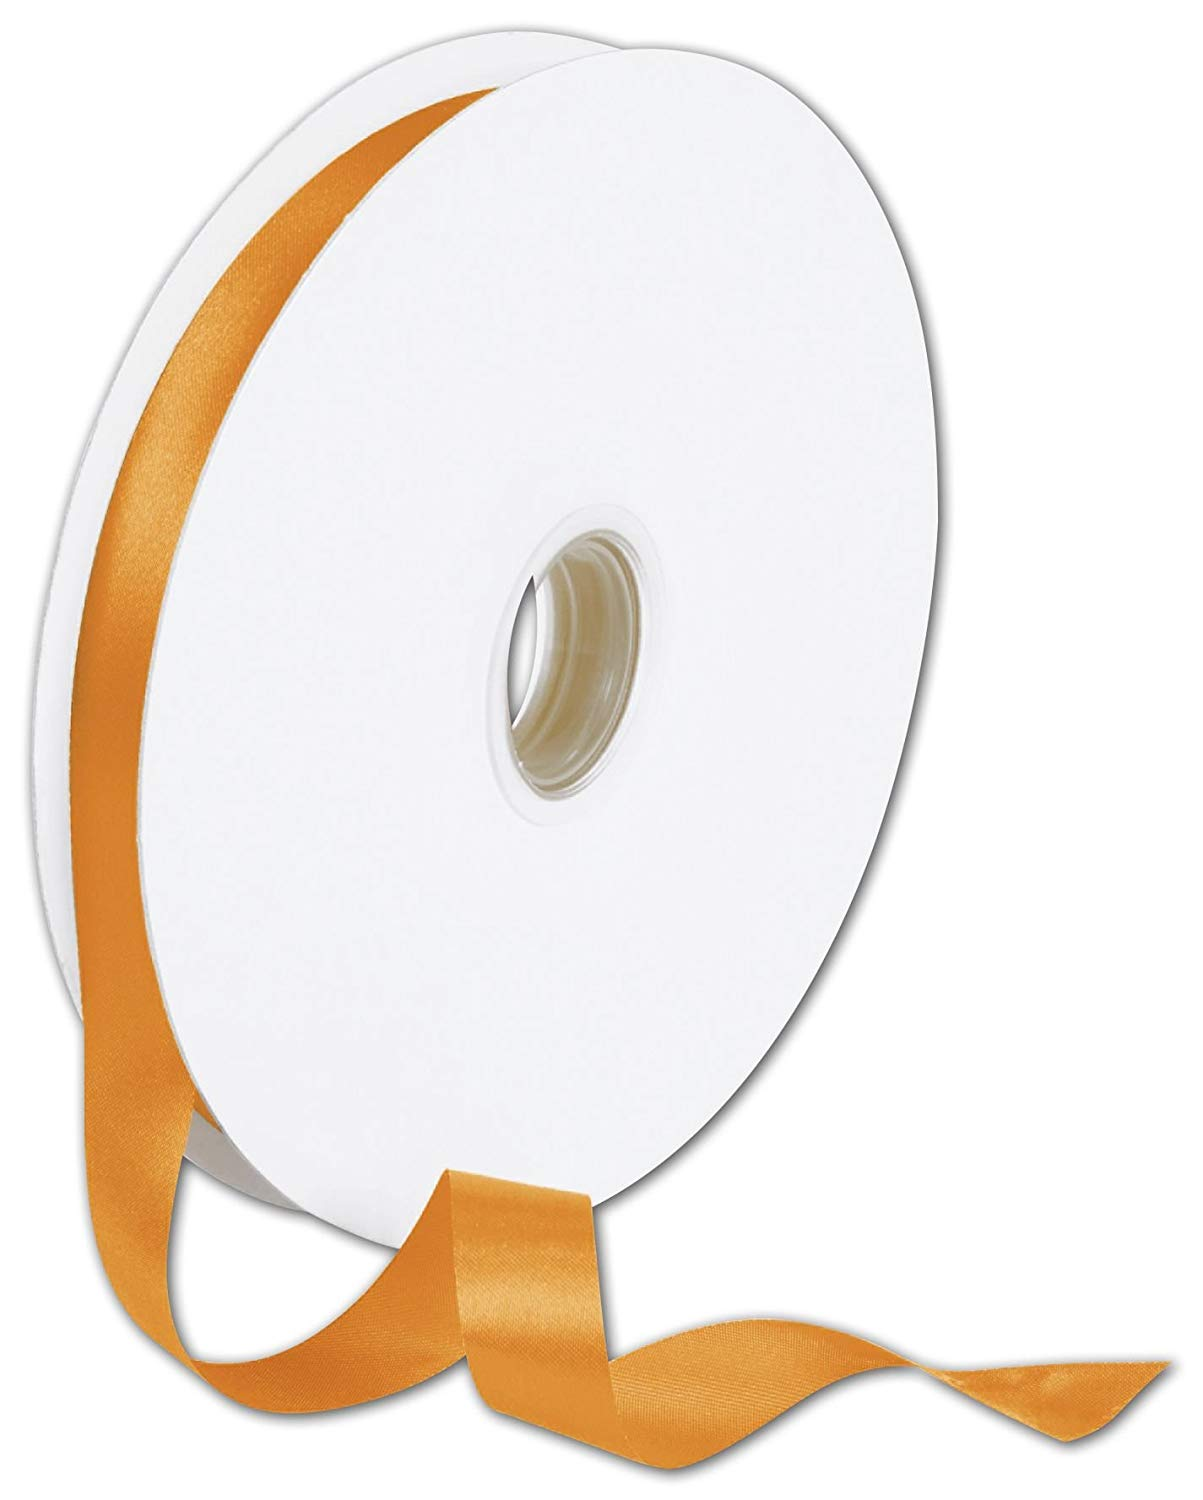 "Double Face Orange Satin Ribbon, 5/8"" x 100 Yds (1 Roll) - BOWS-088-5-751"